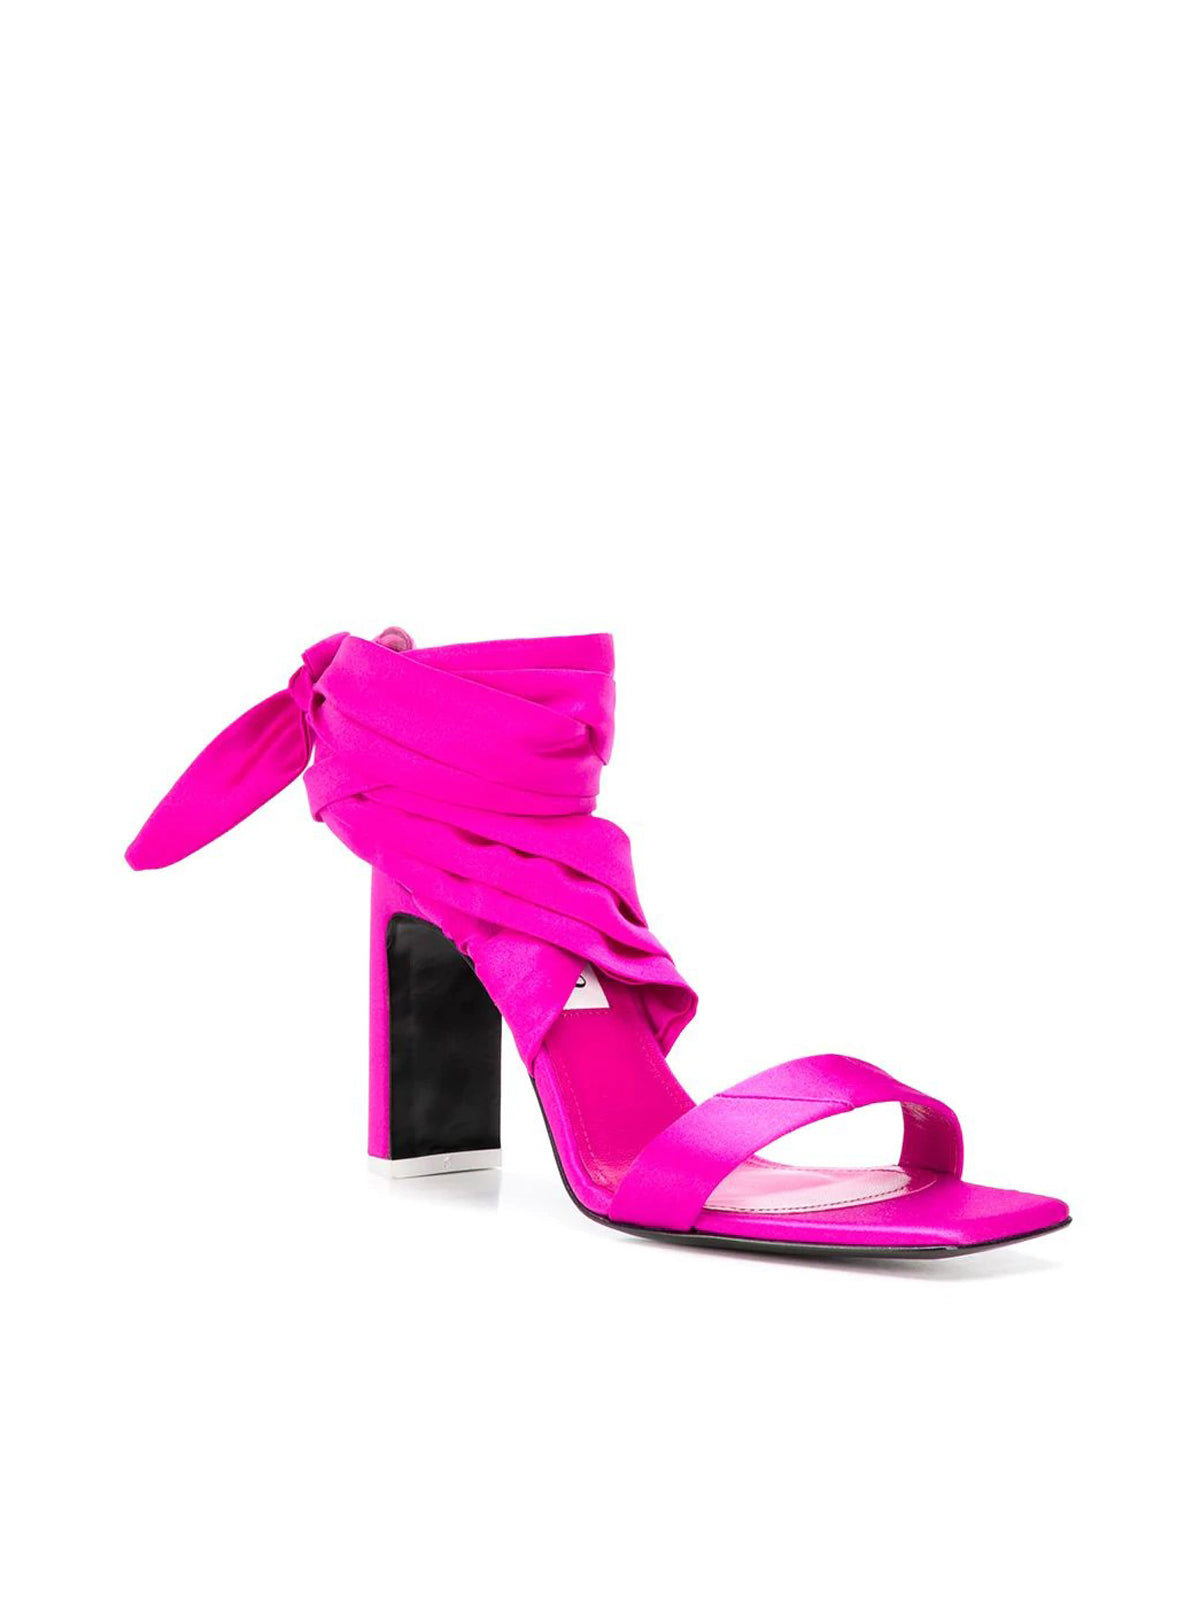 wraparound ankle tie sandals